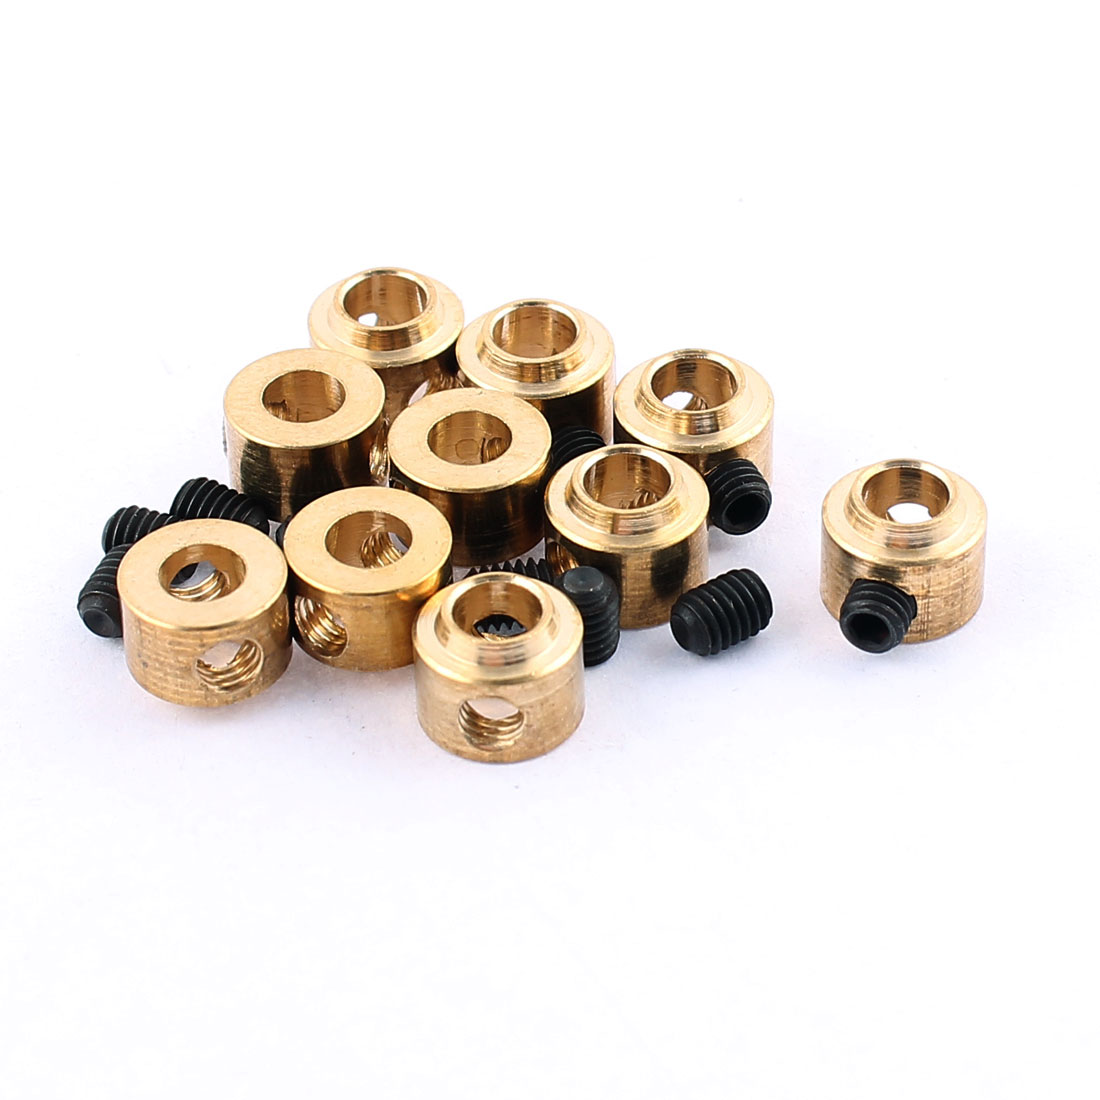 10 Pcs RC Airplane Landing Gear Wheel Collars 3.5mm Inner Dia 7x5.5mm w Screw